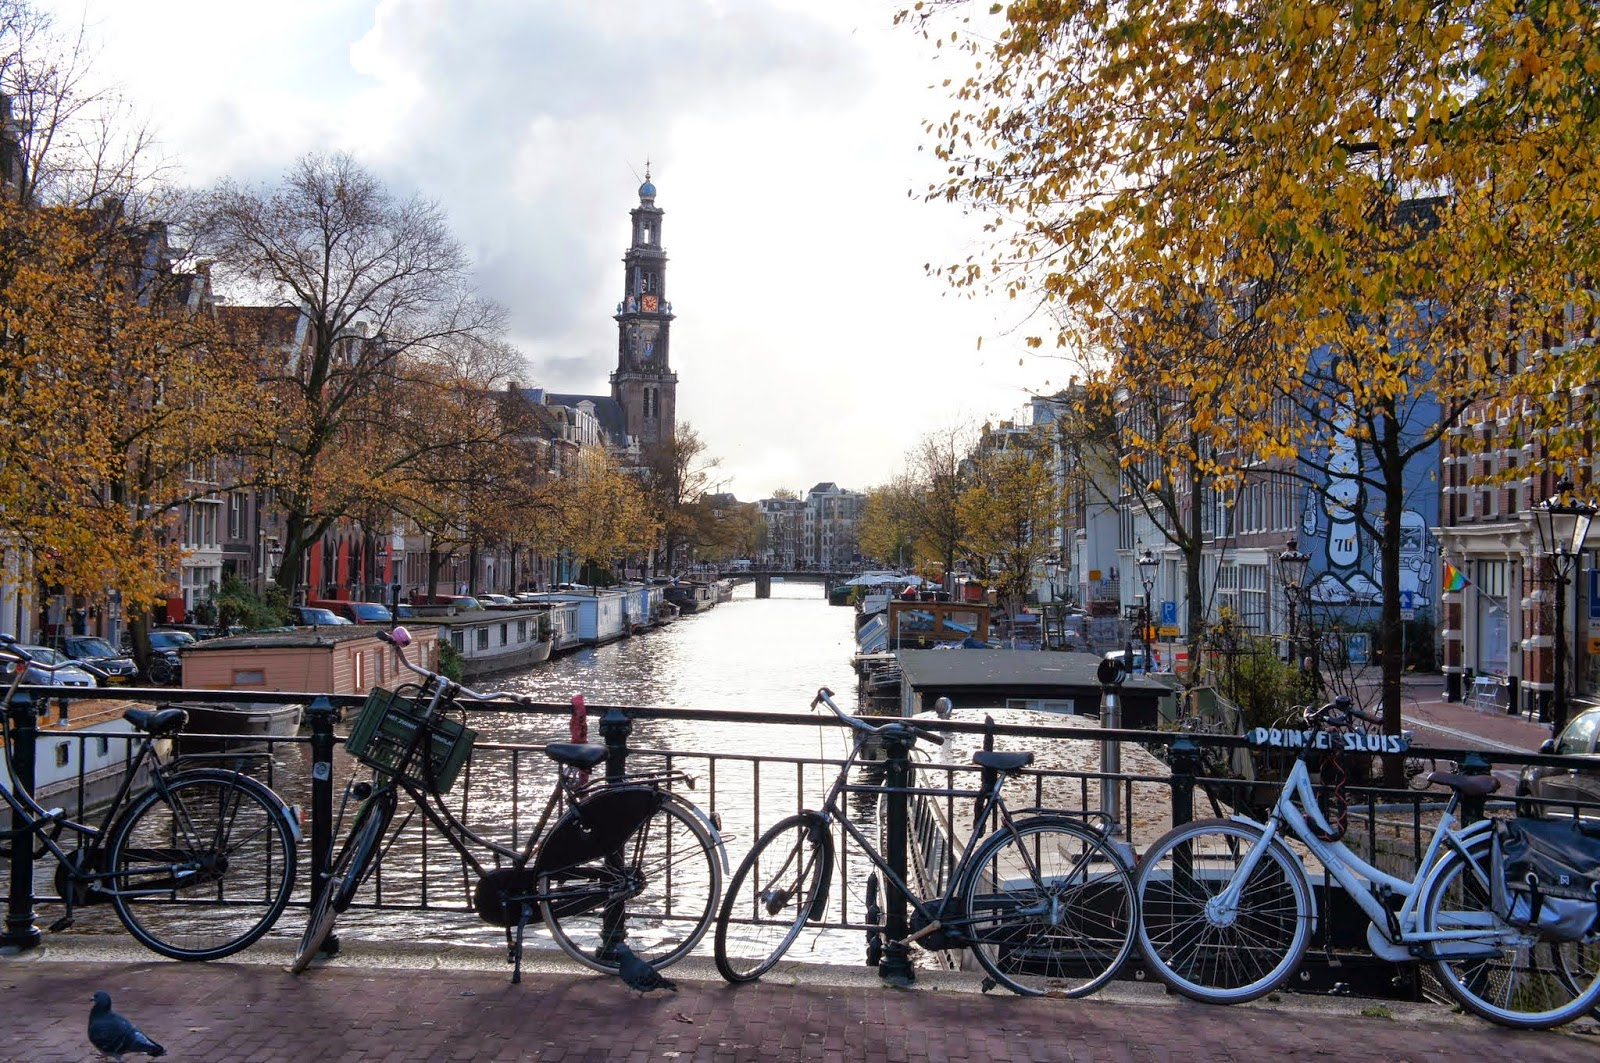 Amsterdam - Beautiful canals